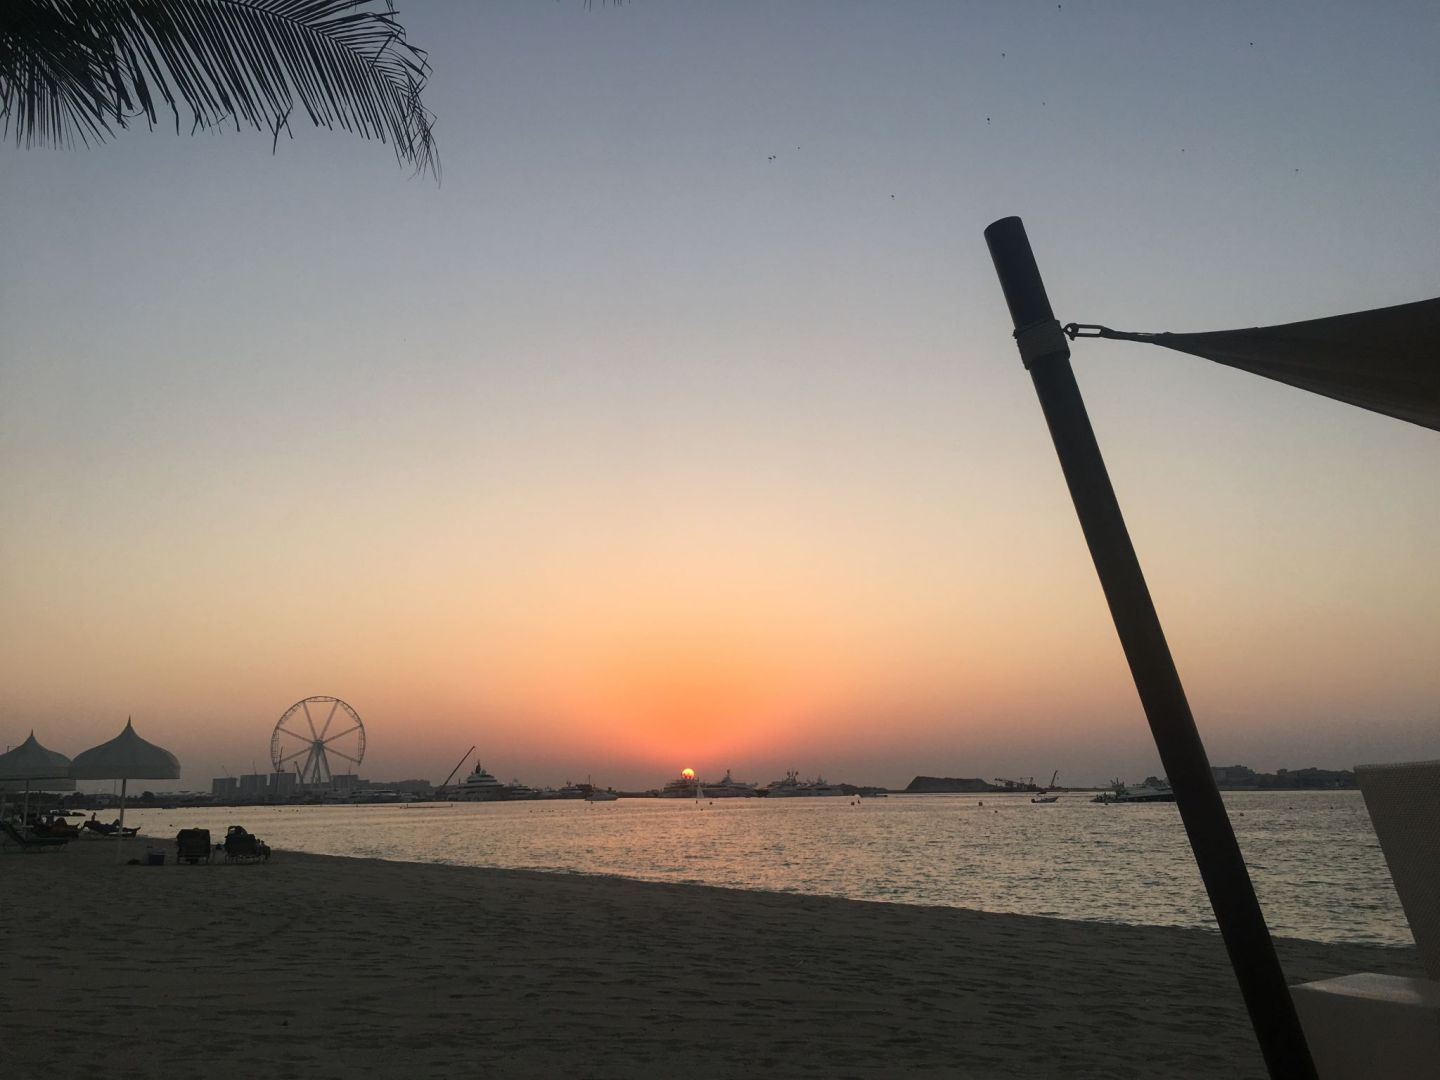 Beach-One-and-Only-Jetty-Lounge-Dubai